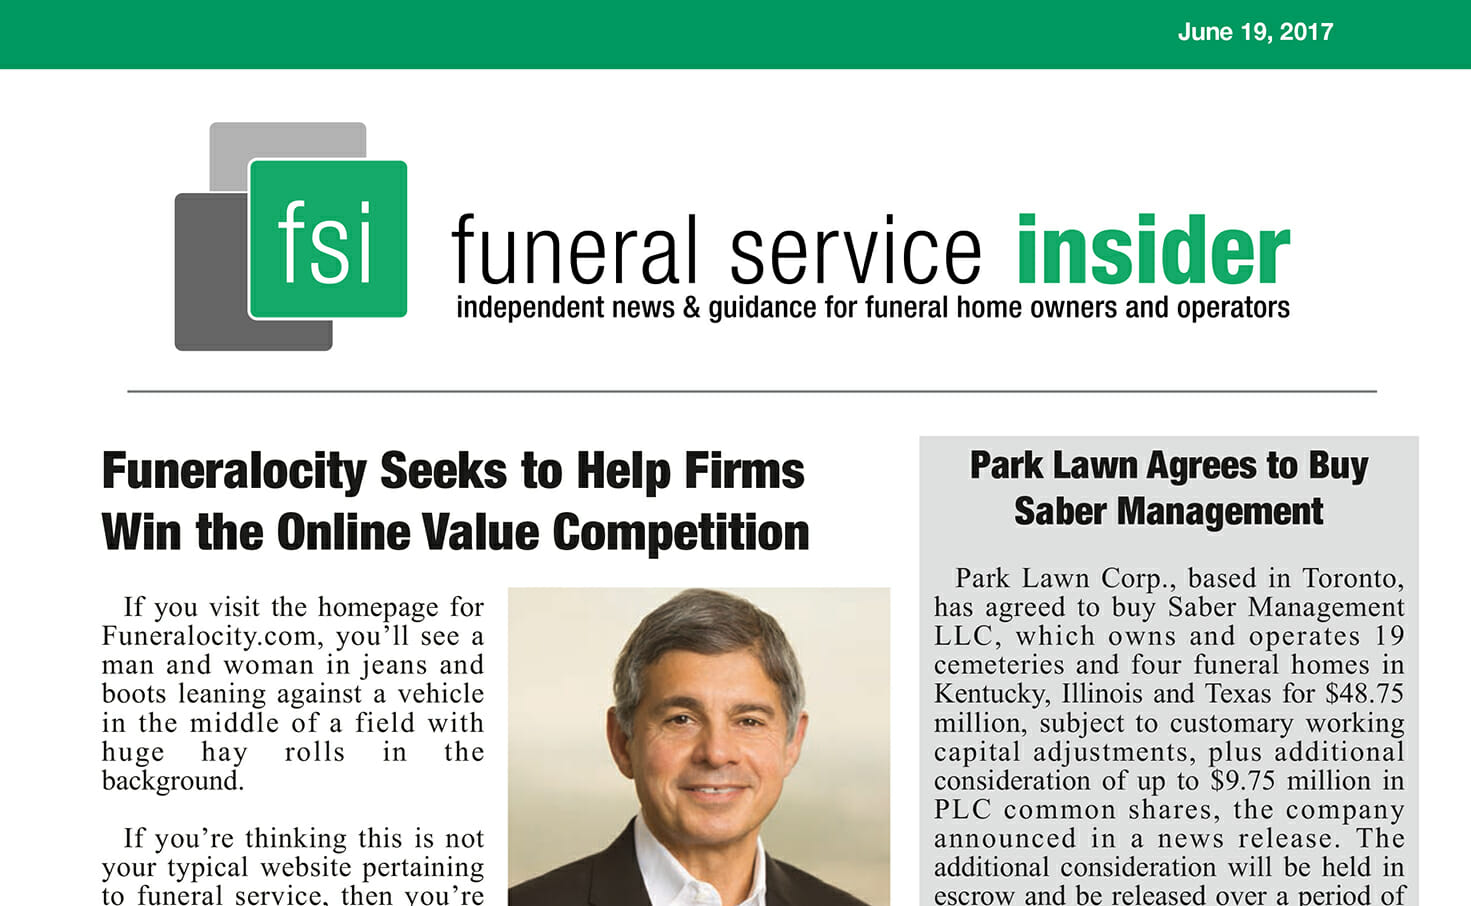 Funeralocity Seeks to Help Firms With the Online Value Competition